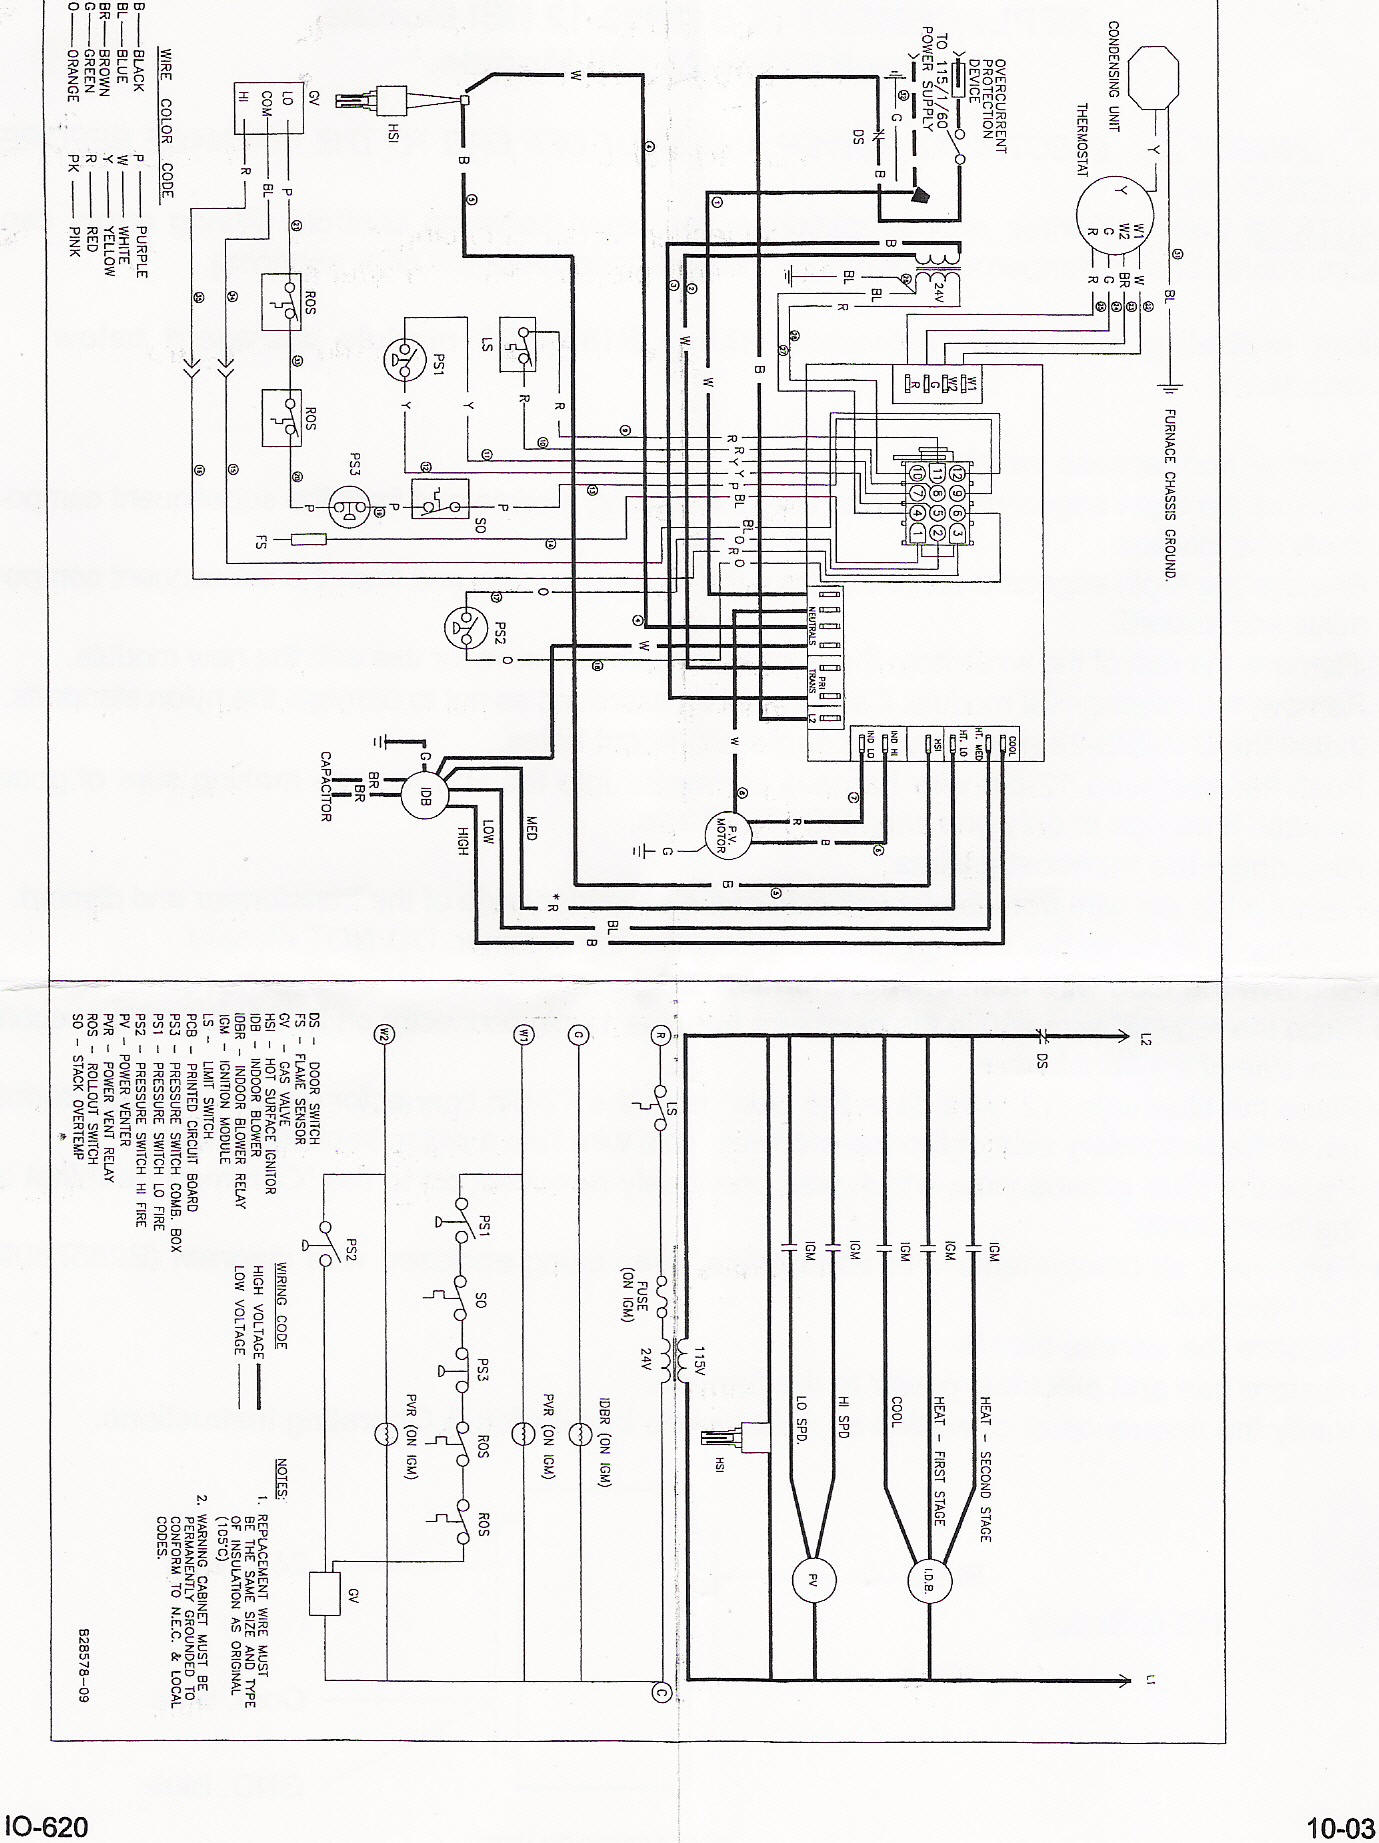 goodma2 instr goodman control board b18099 23 instructions goodman furnace wire diagram at bayanpartner.co